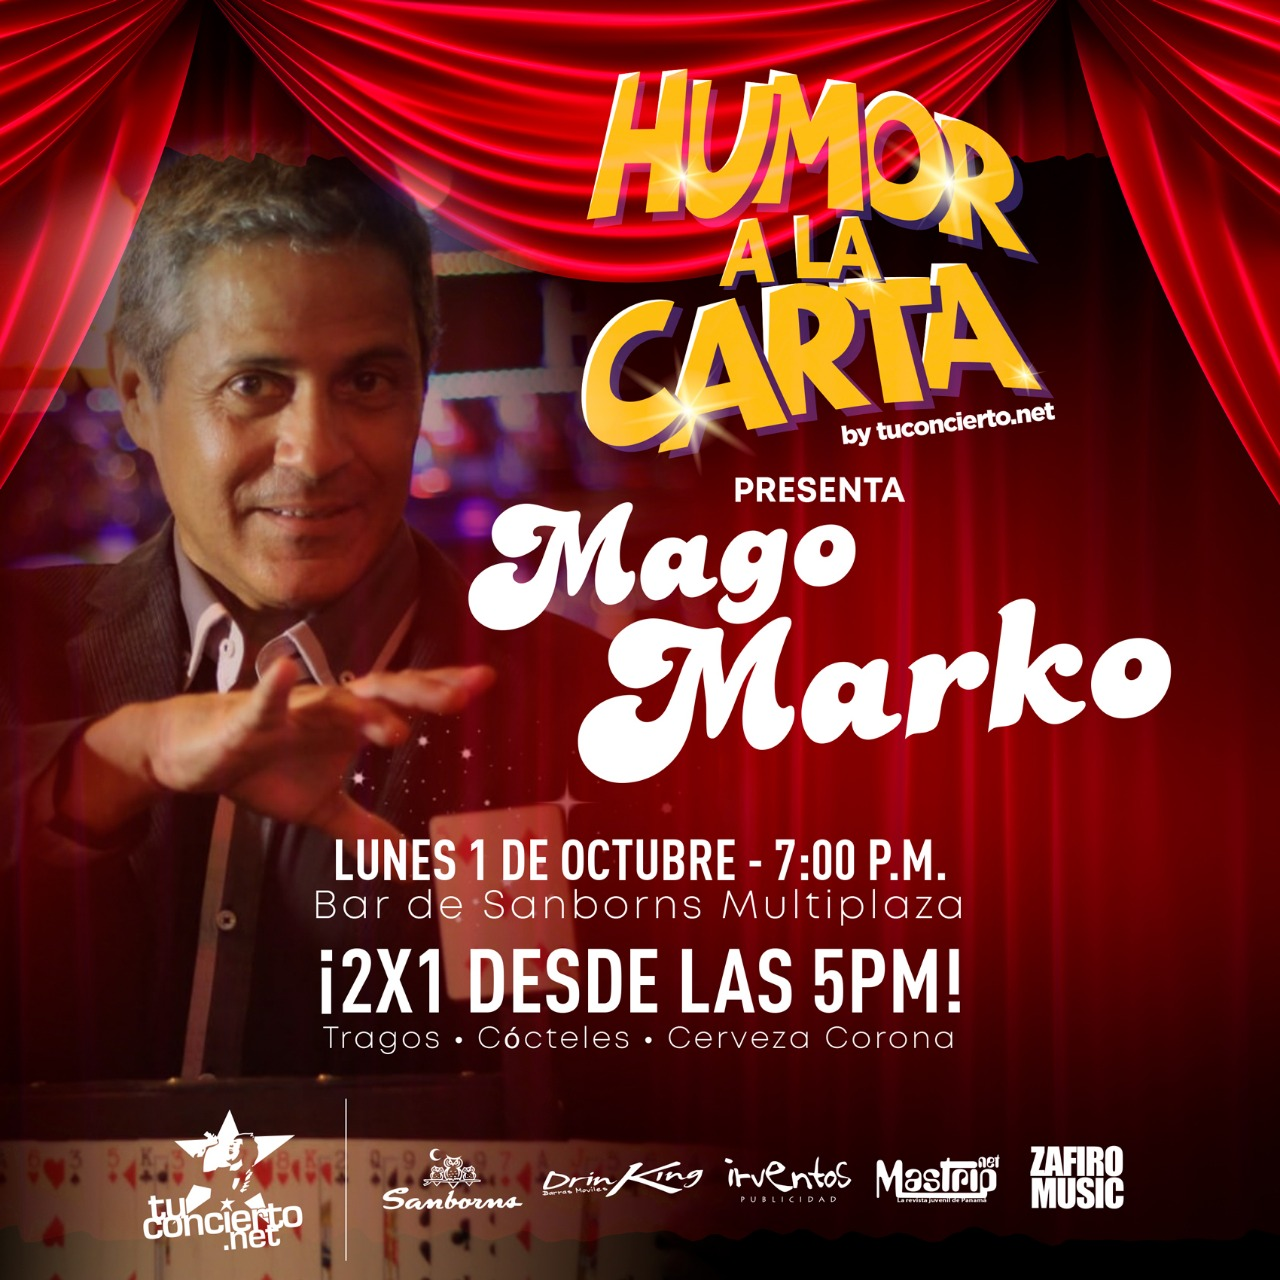 Photo of Humor a la Carta by @tuconcierto presenta Mago Marko